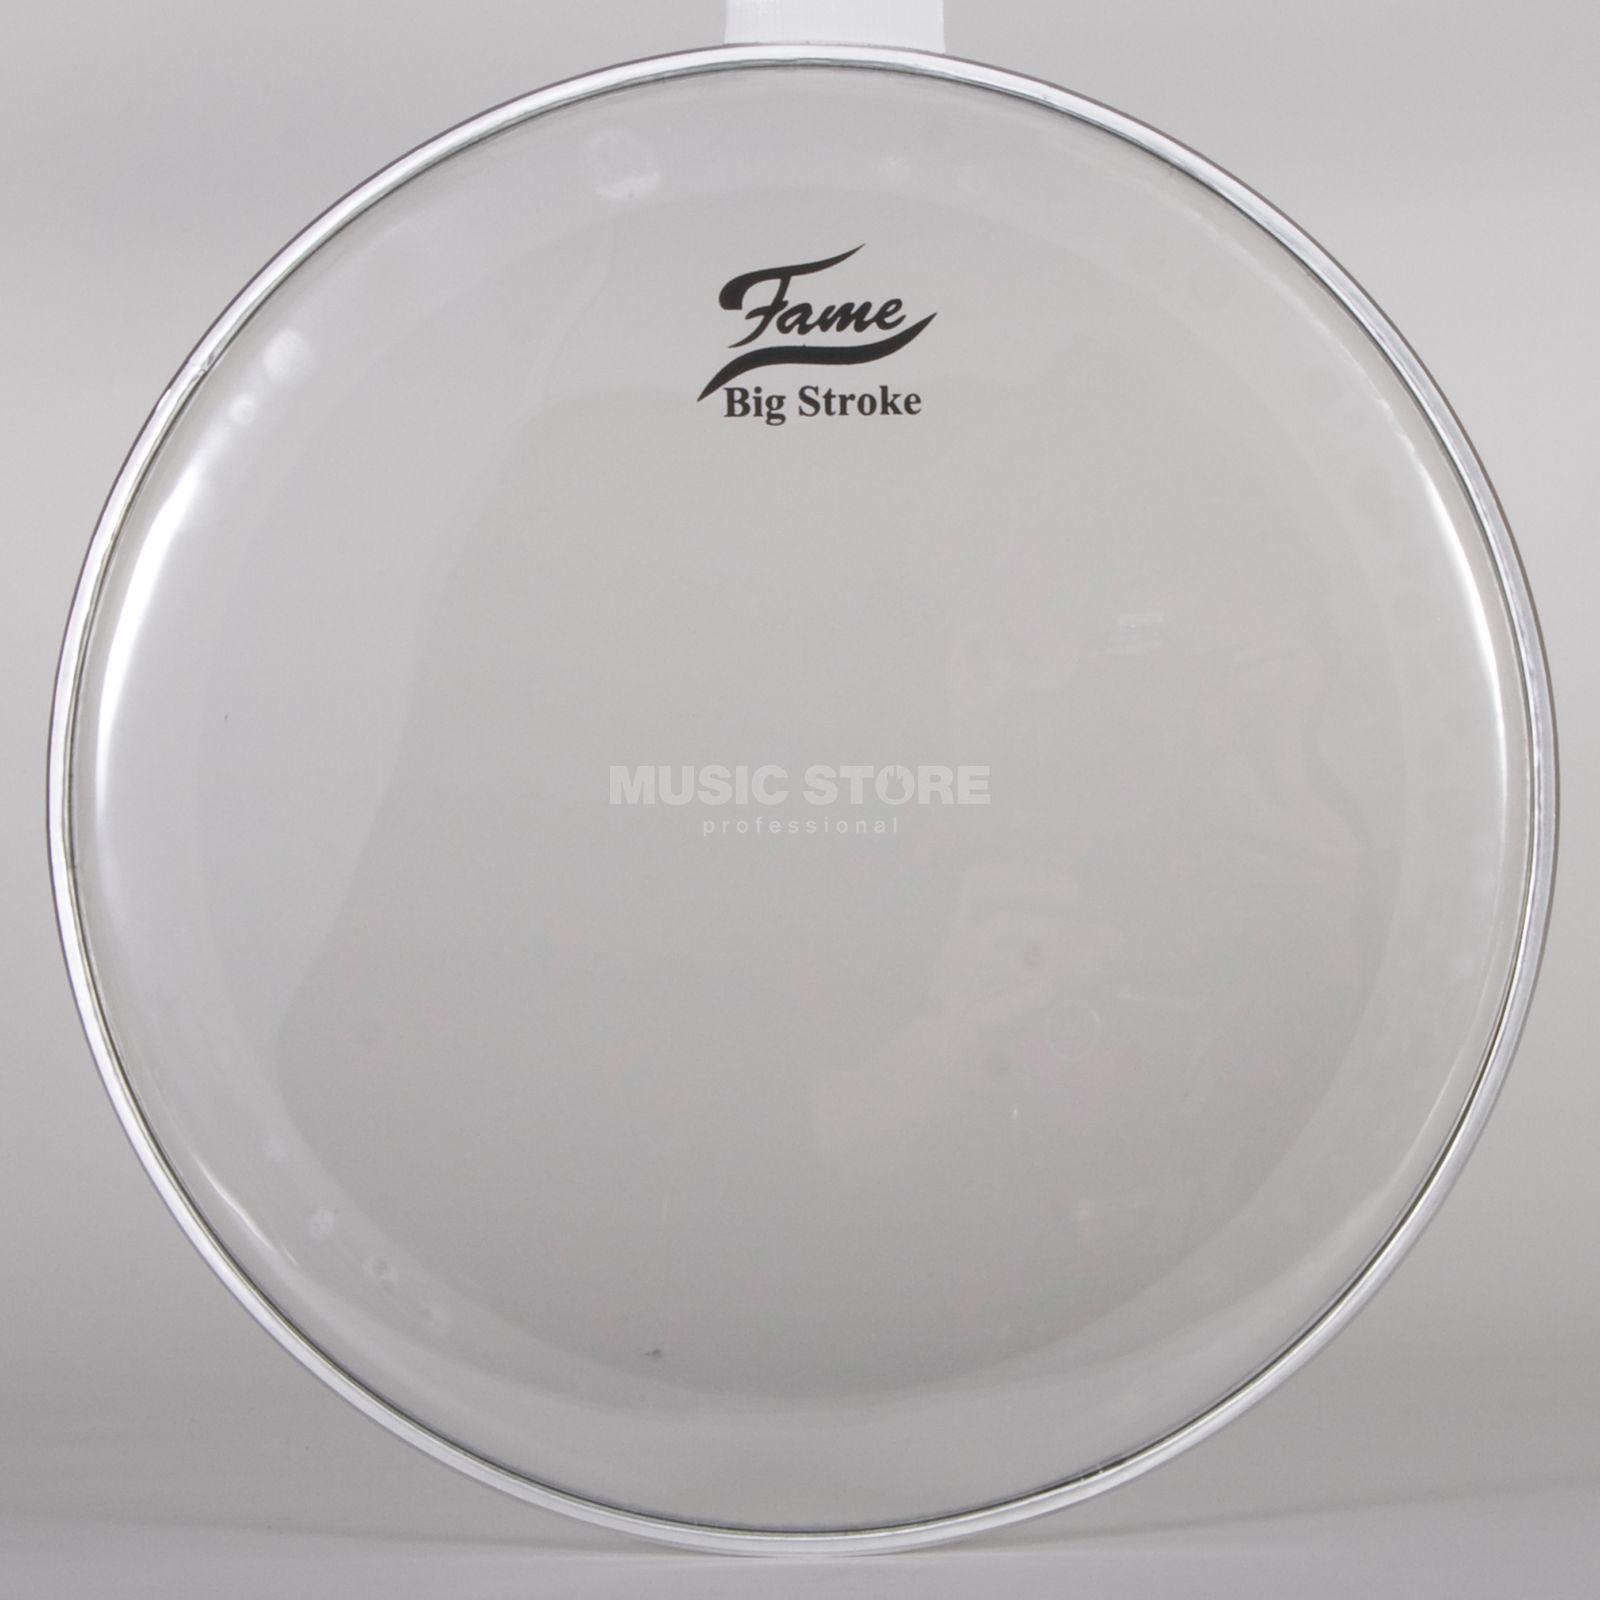 "Fame Tomvel Big Stroke, 16"", Hydraulic, clear Productafbeelding"